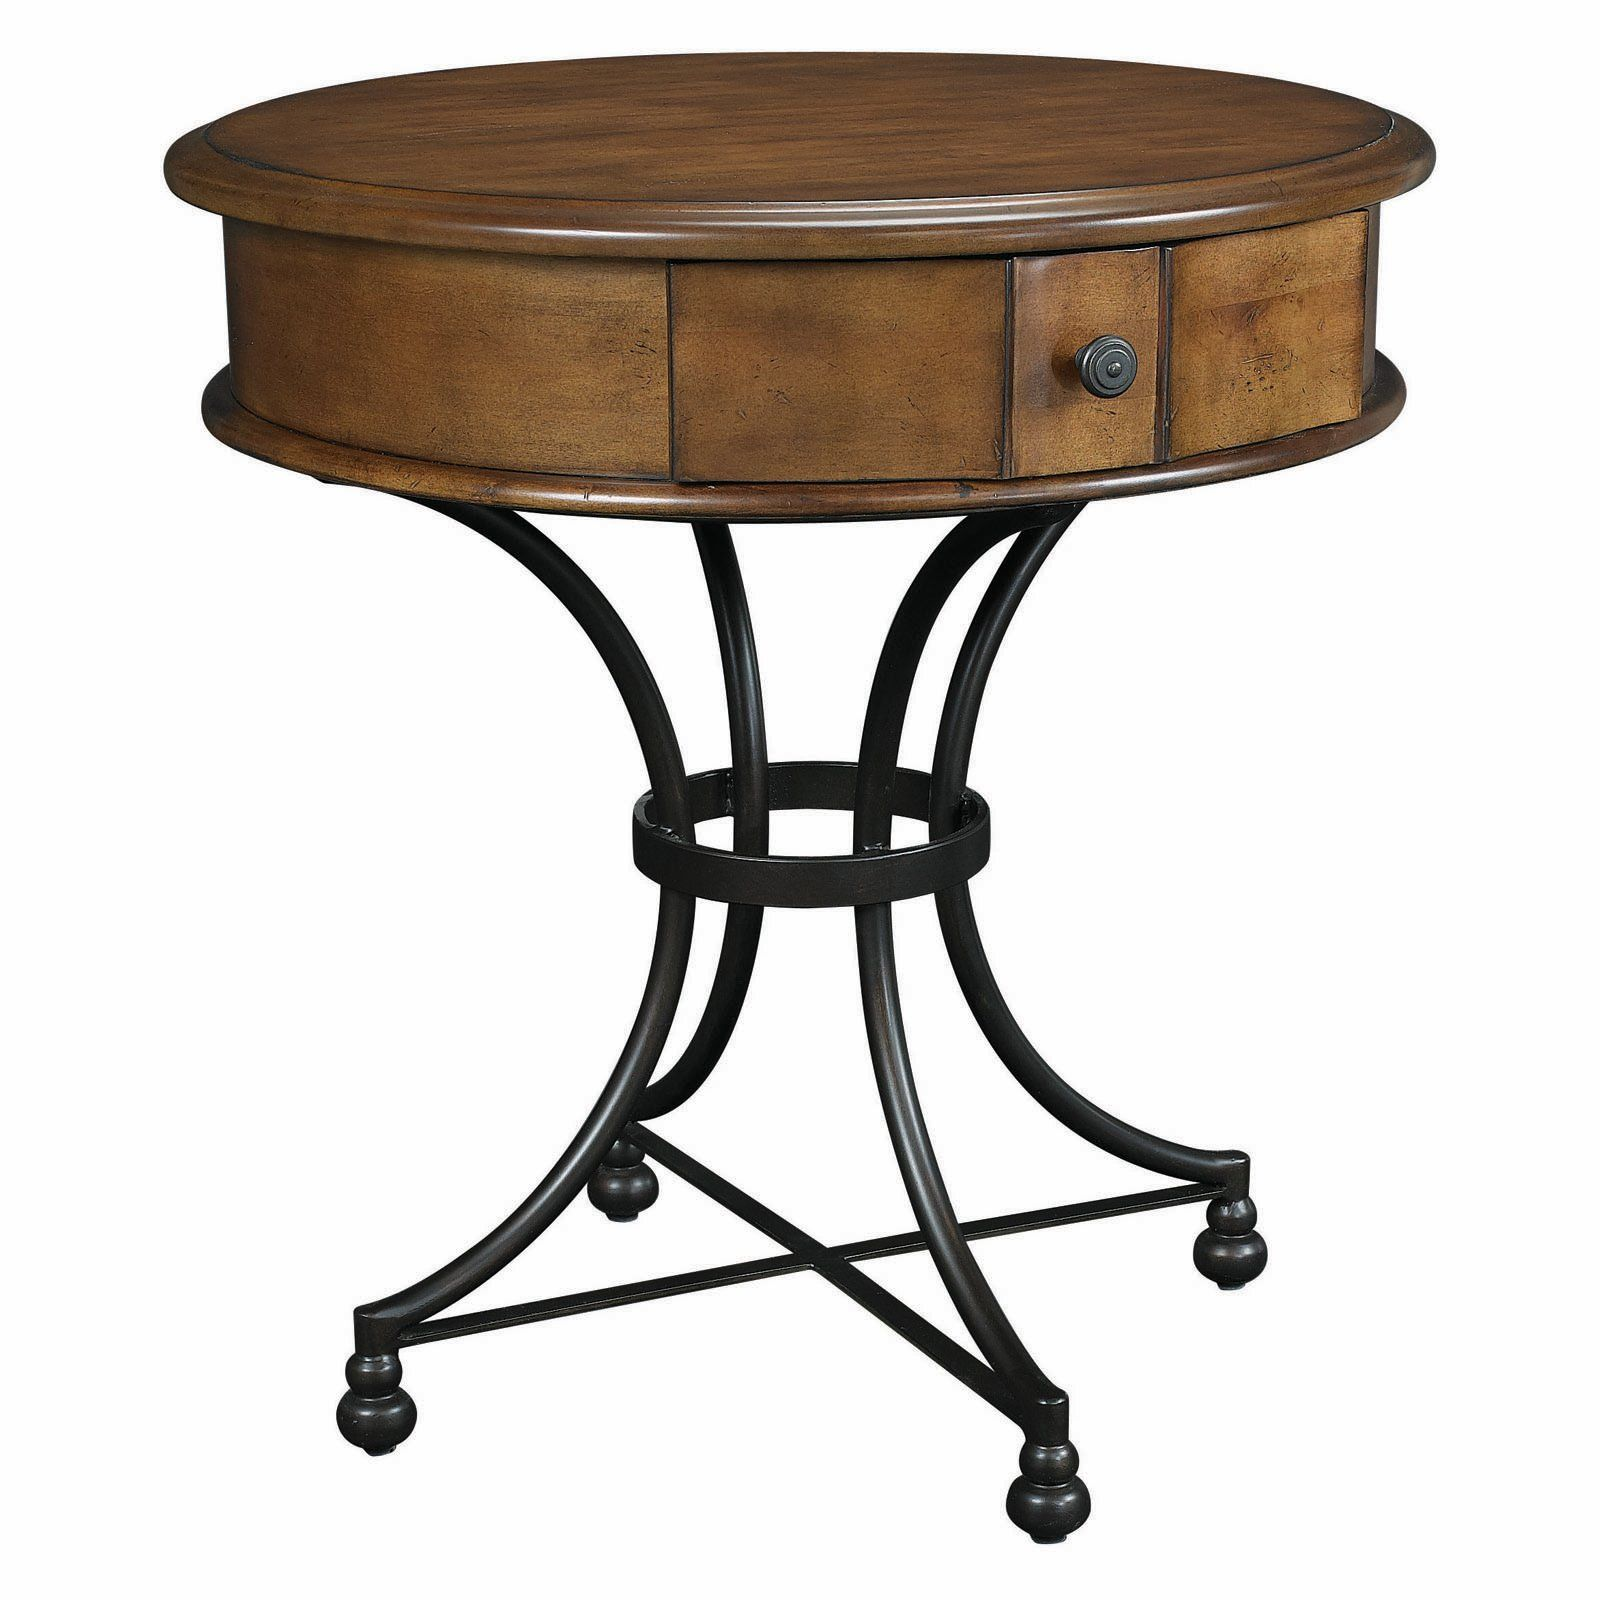 Hammary Siena Round Storage End Table 620 This Is The End Table